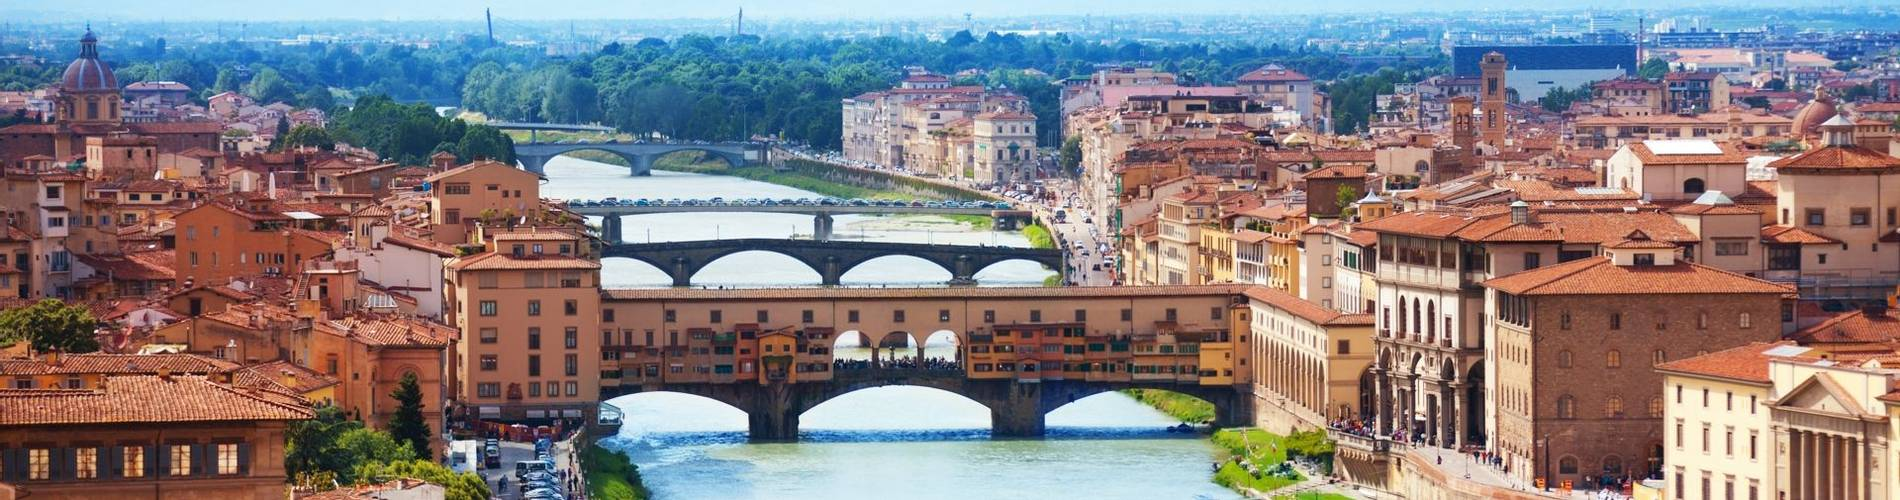 Arno river and Ponte Vecchio in Florence.jpg